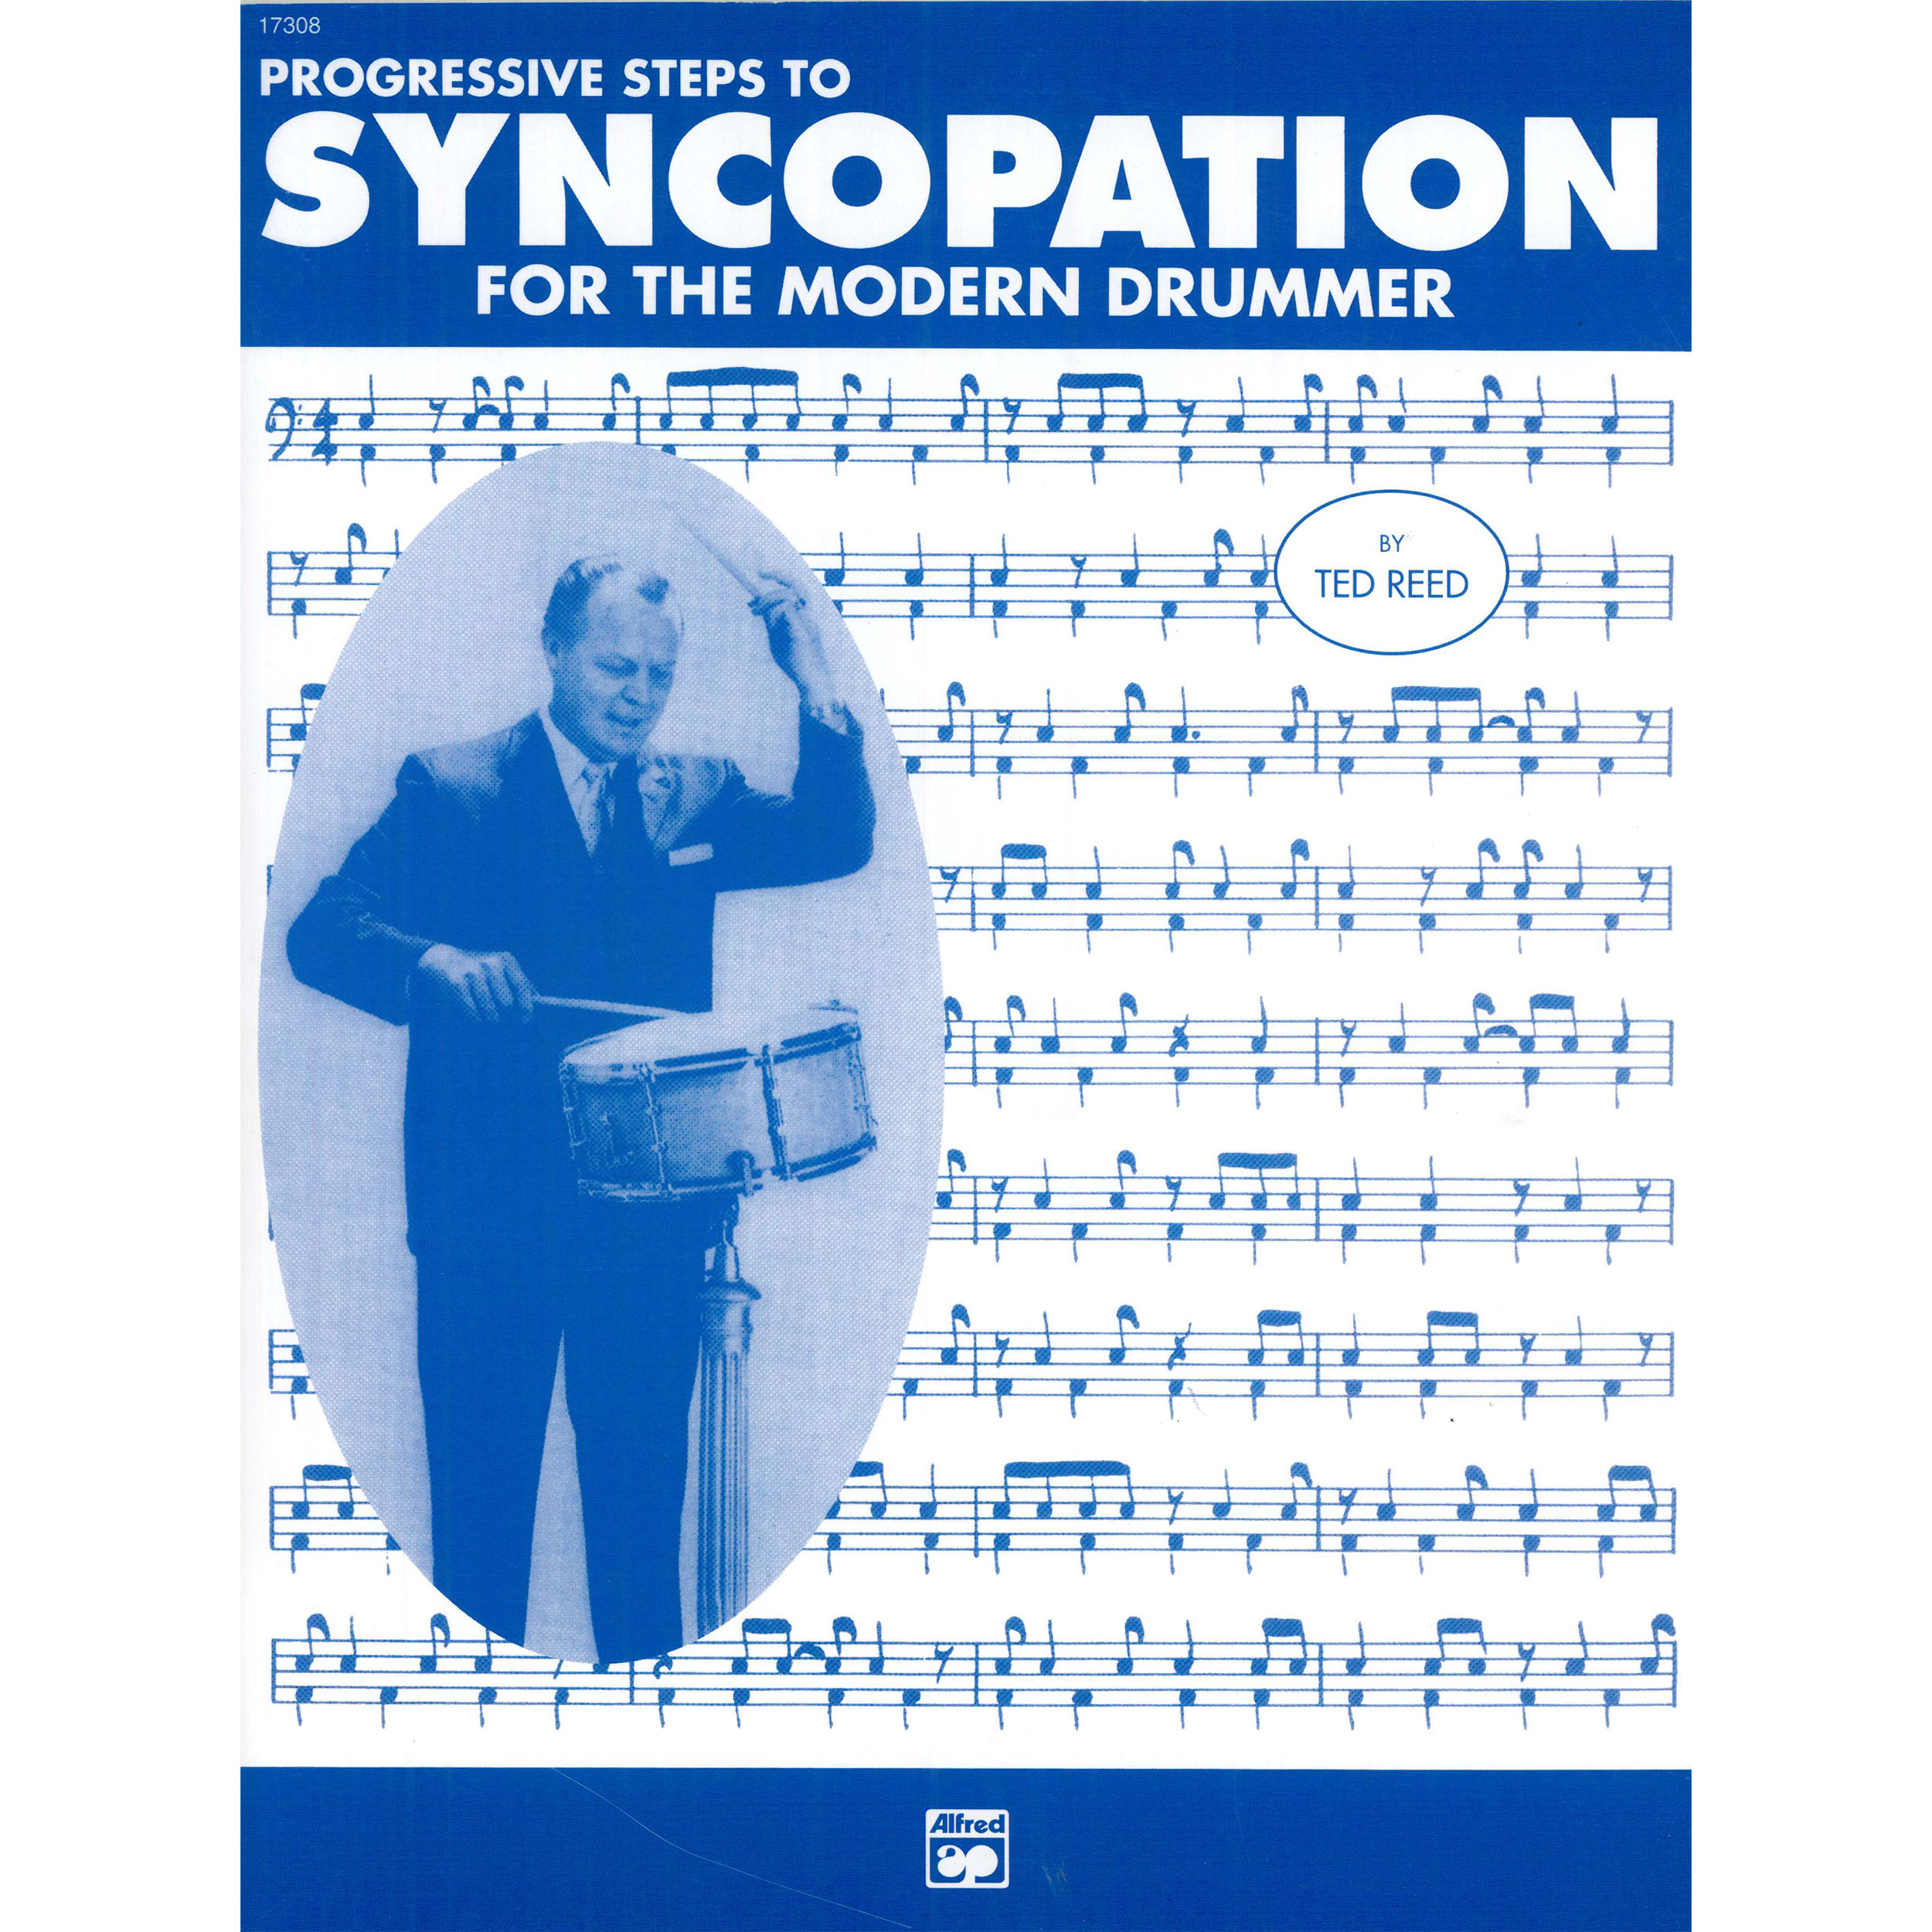 Syncopation for Modern Drummer by Ted Reed